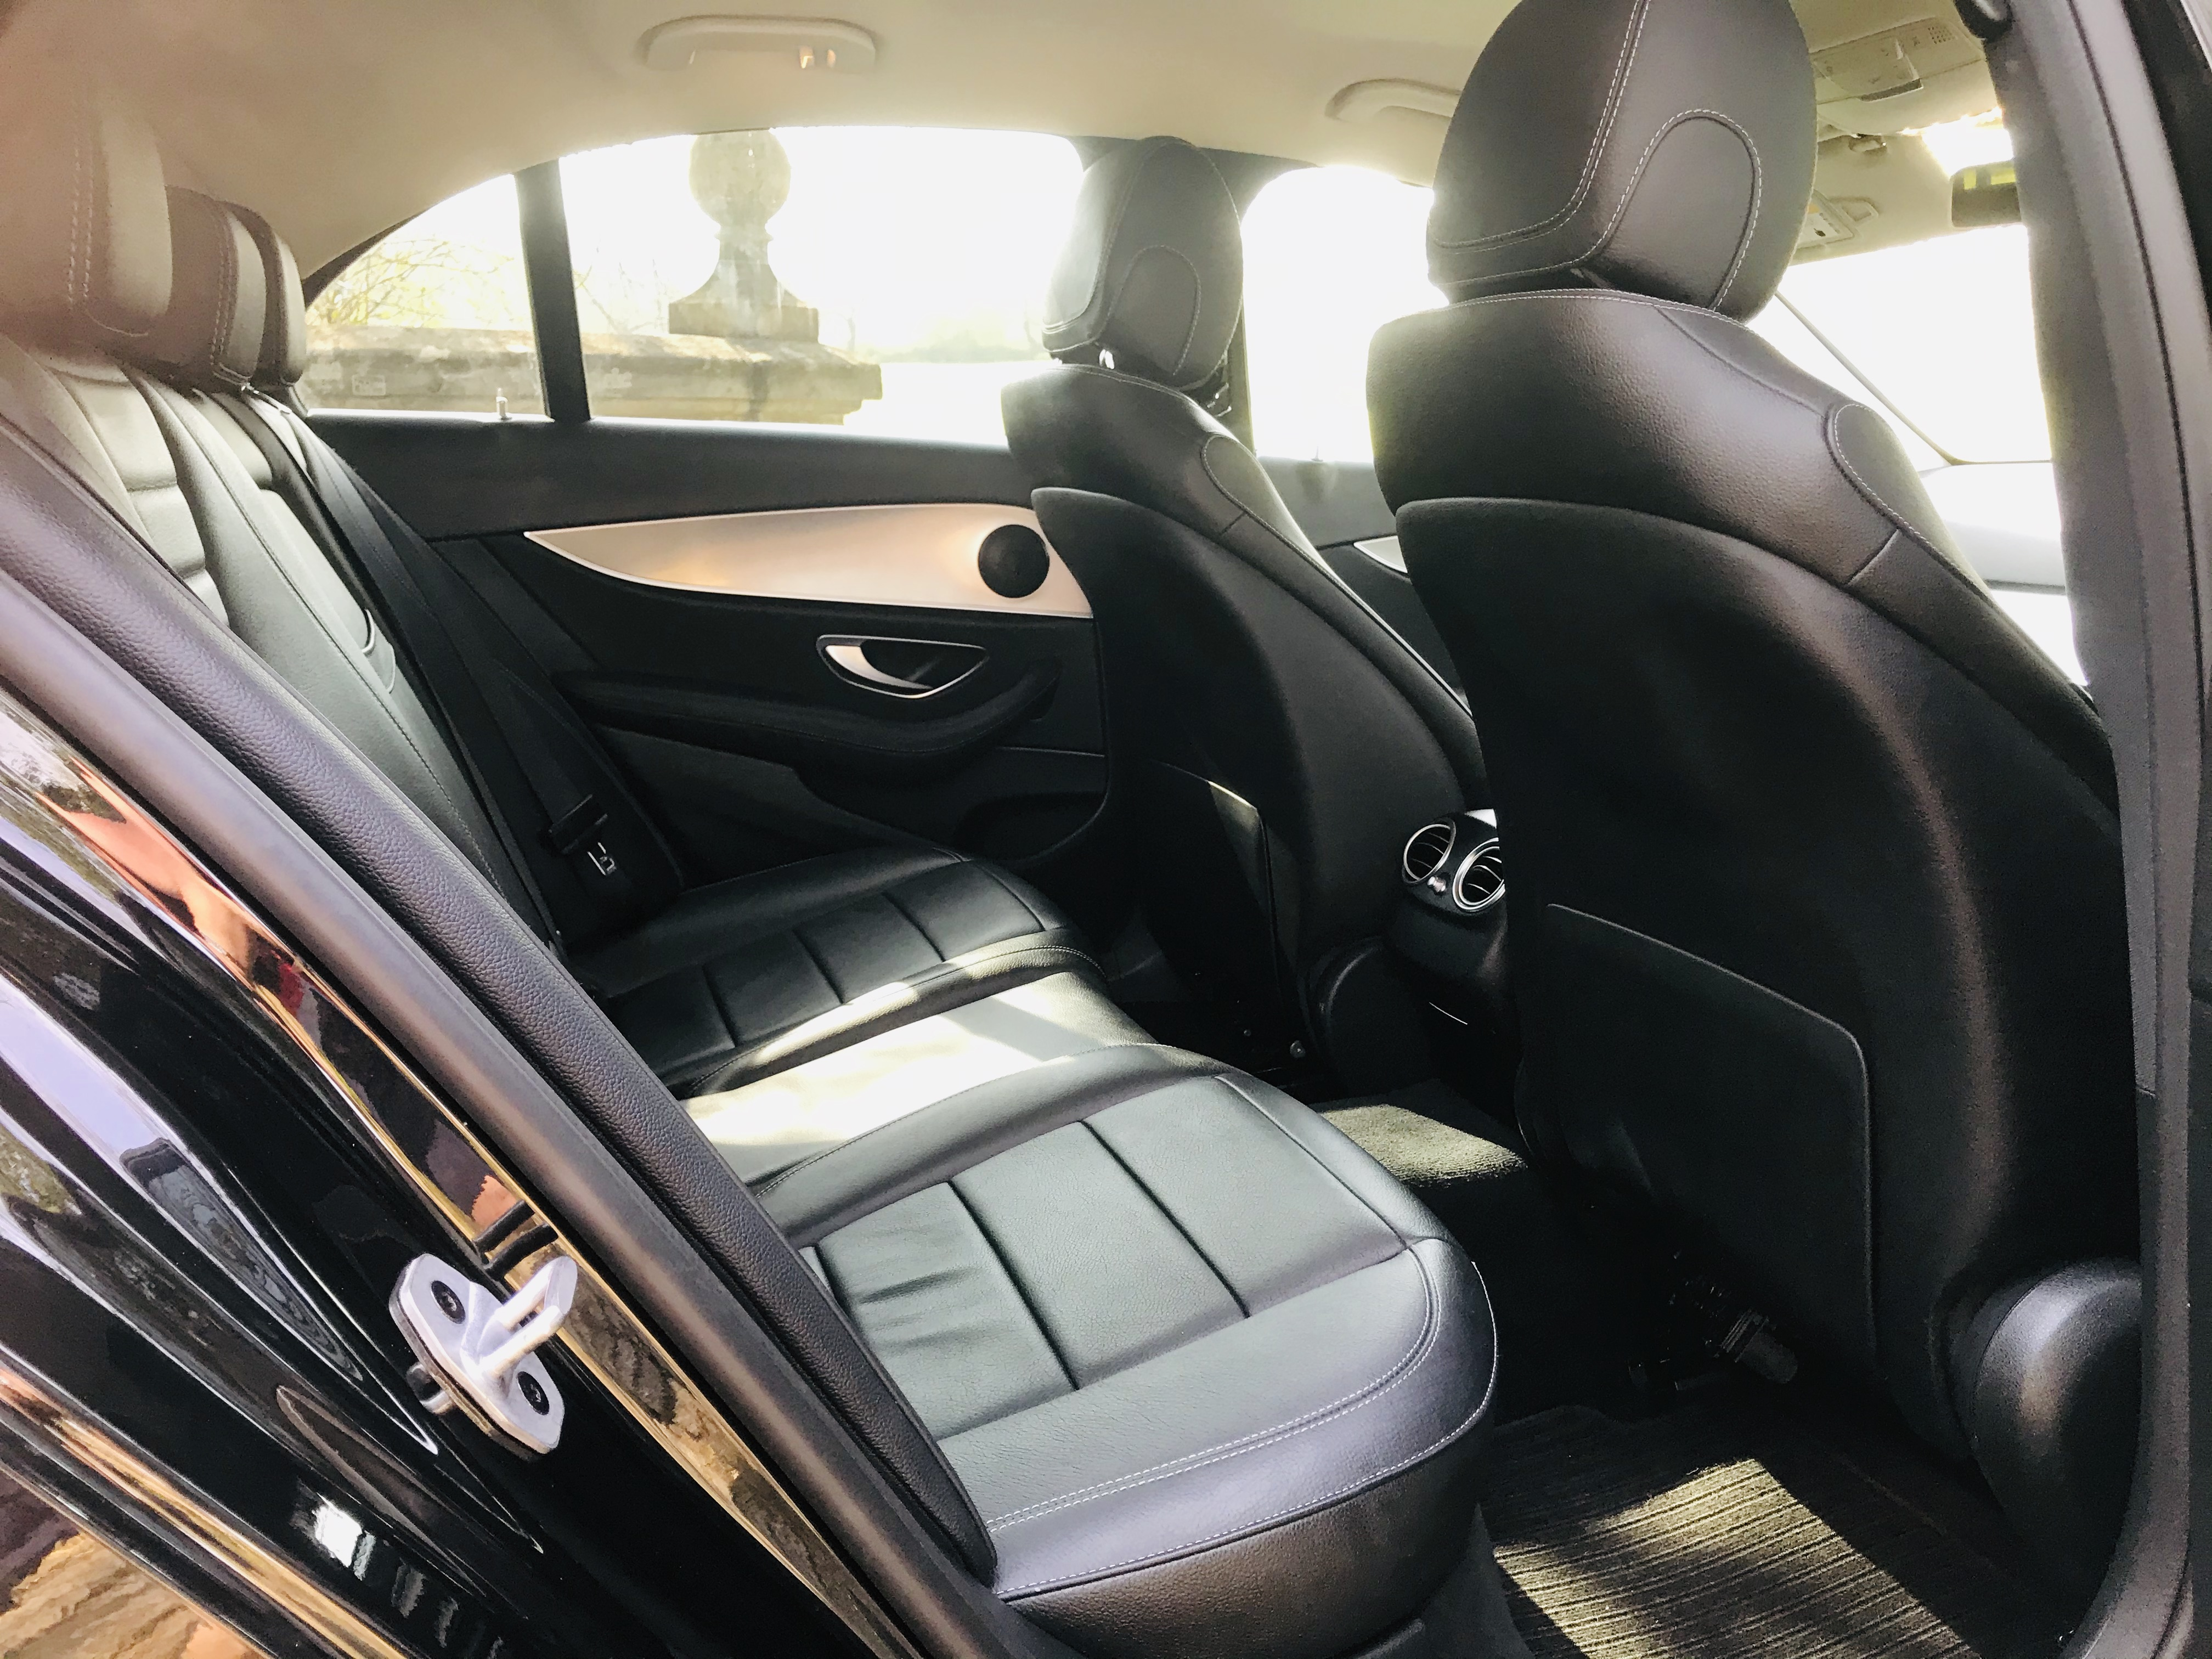 """On Sale MERCEDES E220d """"SPECIAL EQUIPMENT"""" 9G TRONIC (2019 MODEL) 1 OWNER - SAT NAV - LEATHER - WOW! - Image 15 of 26"""